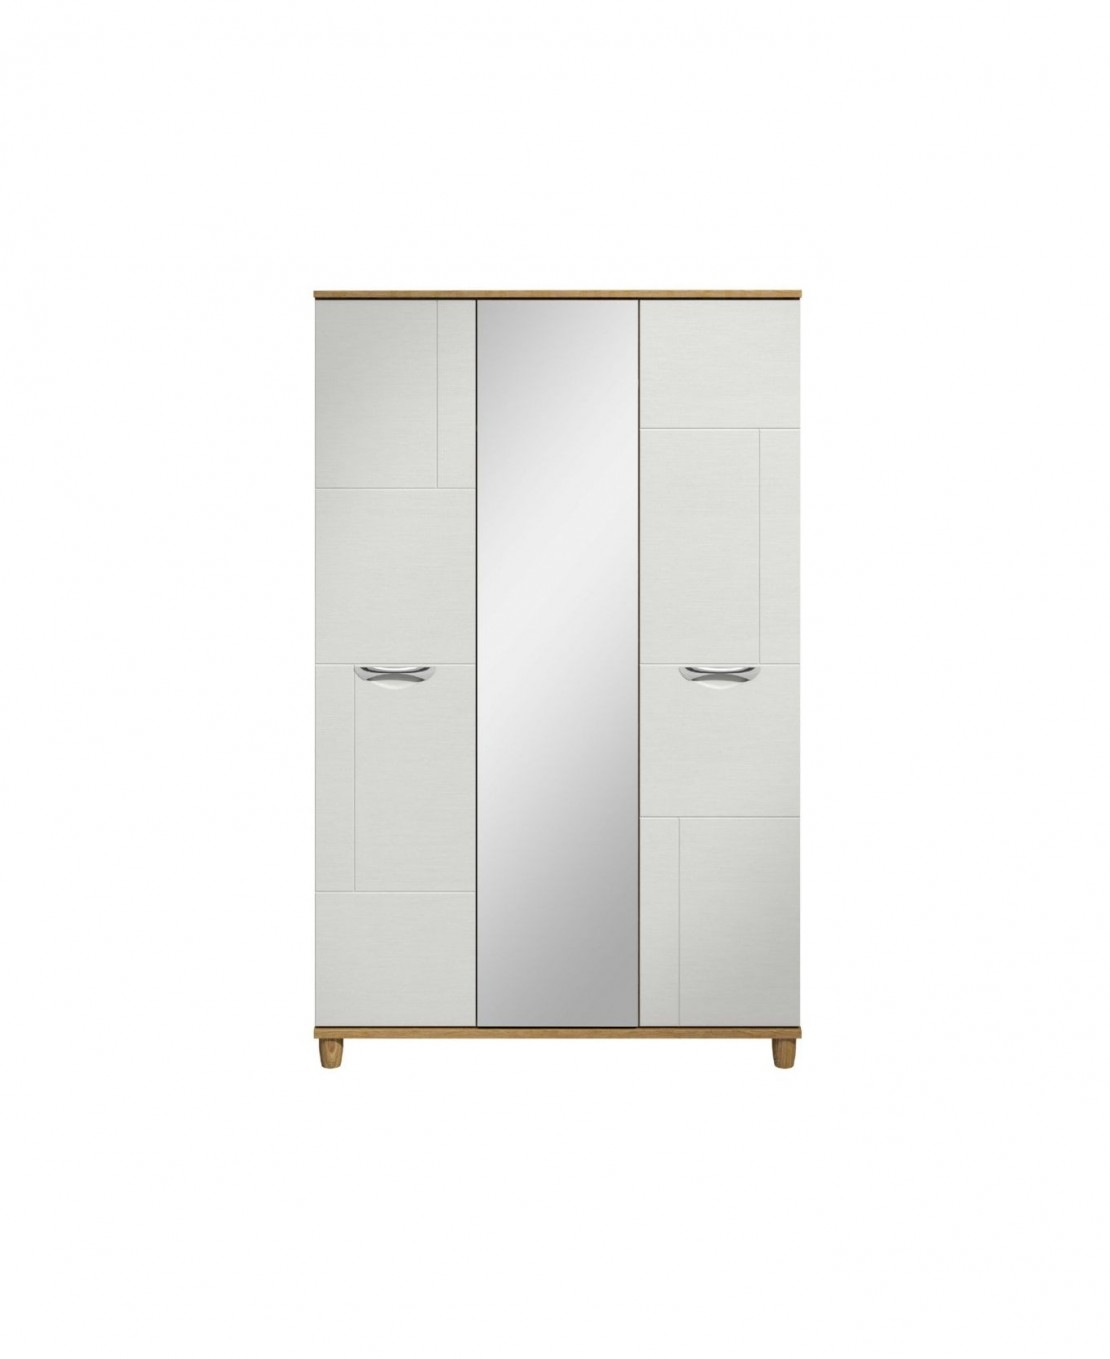 /_images/product-photos/kt-furniture-moda-white-3-door-centre-robe-a.jpg